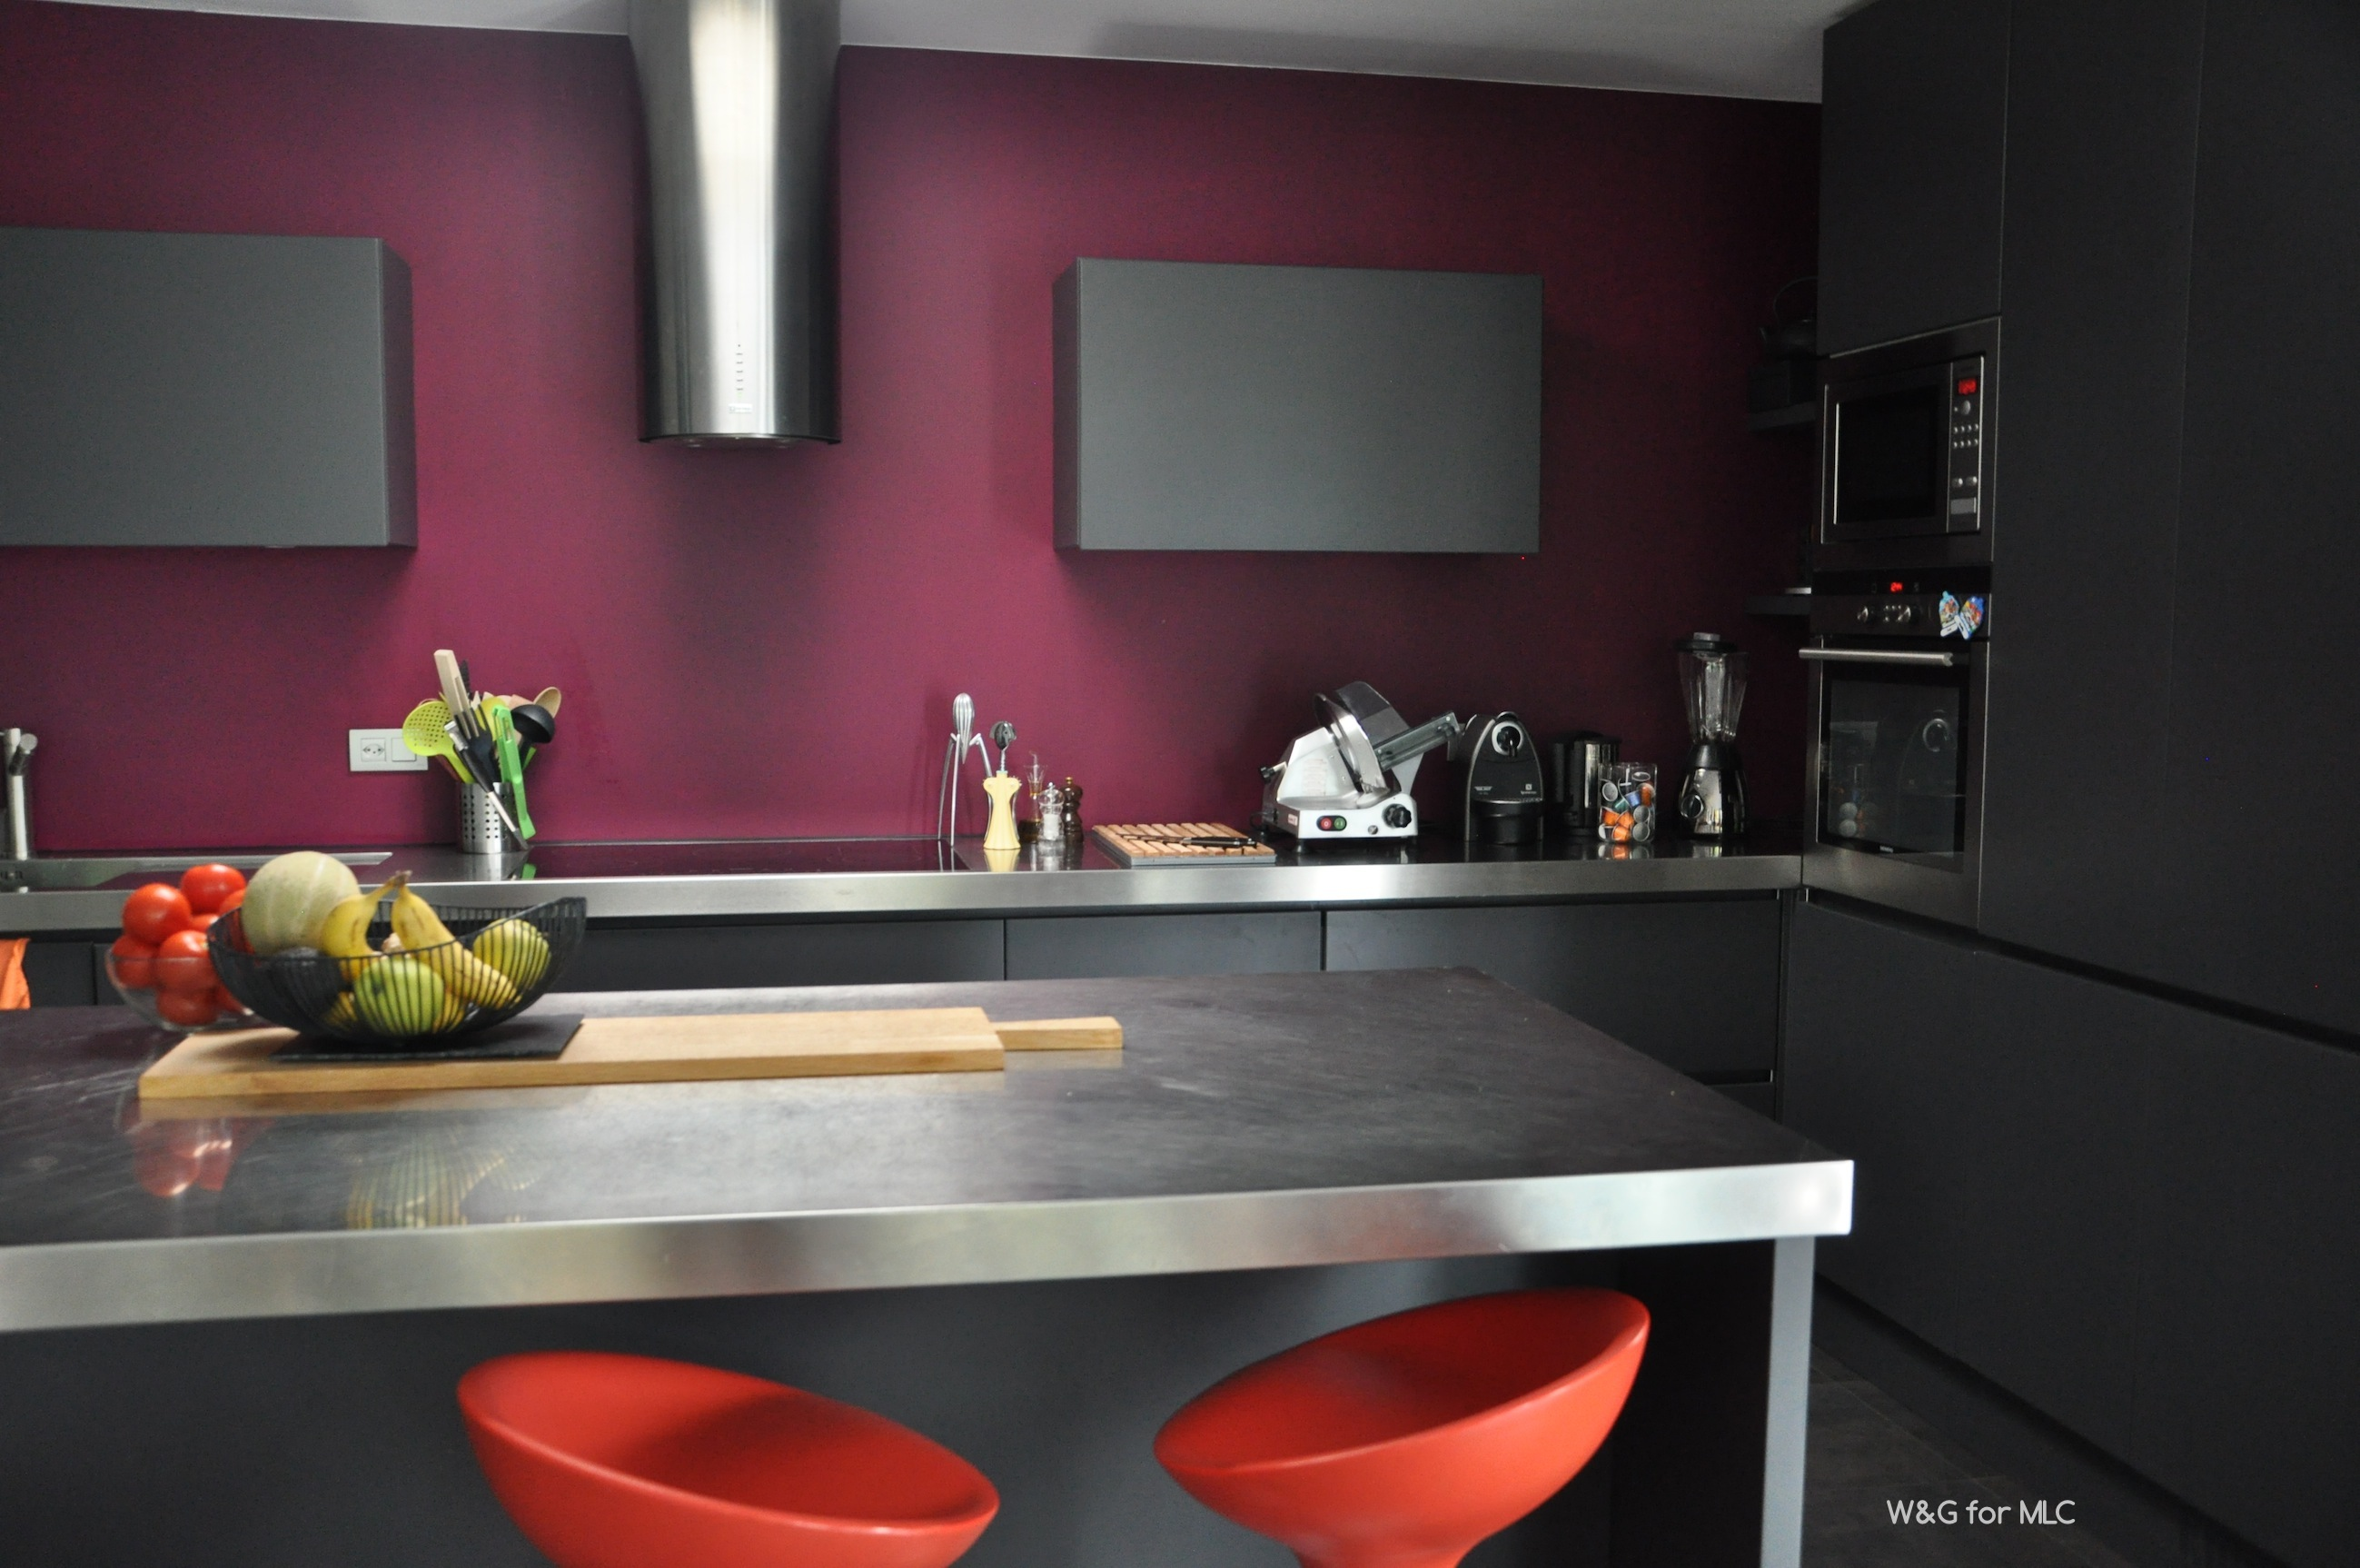 Cuisine anthracite sur fond fushia archives le blog d co for Maison et decoration cuisine